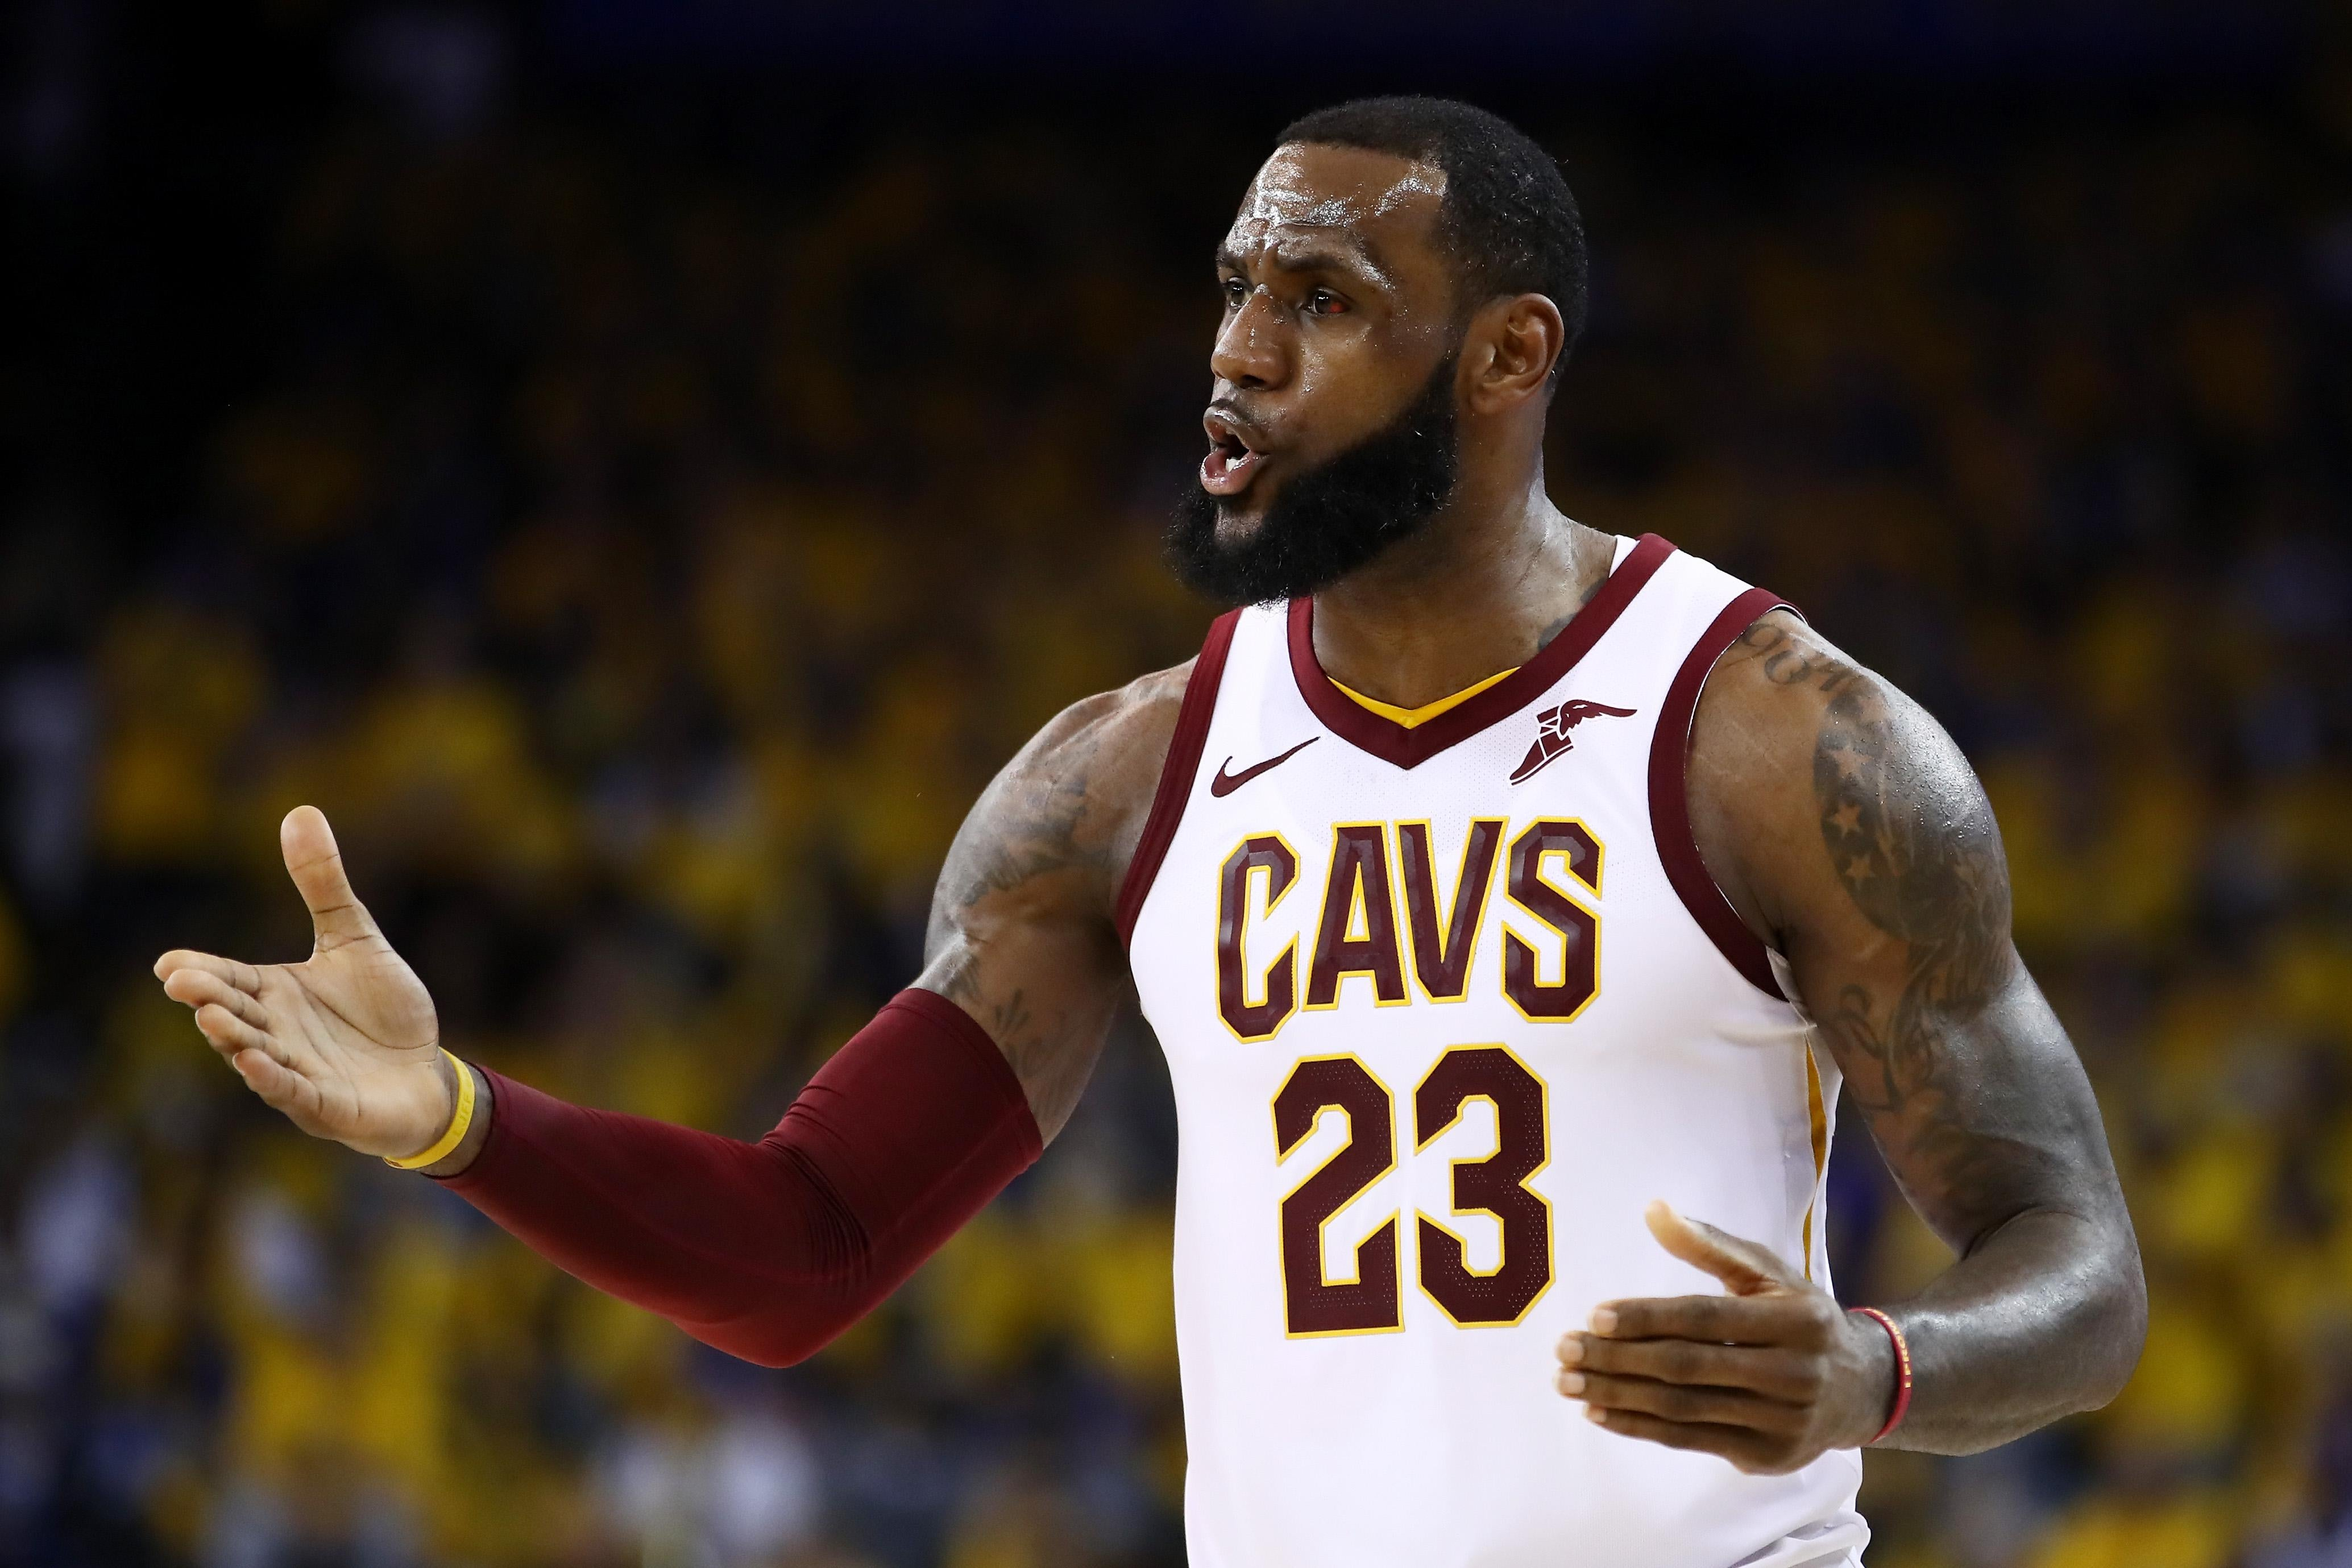 OAKLAND, CA - JUNE 03:  LeBron James #23 of the Cleveland Cavaliers reacts against the Golden State Warriors in Game 2 of the 2018 NBA Finals at ORACLE Arena on June 3, 2018 in Oakland, California. NOTE TO USER: User expressly acknowledges and agrees that, by downloading and or using this photograph, User is consenting to the terms and conditions of the Getty Images License Agreement.  (Photo by Ezra Shaw/Getty Images)